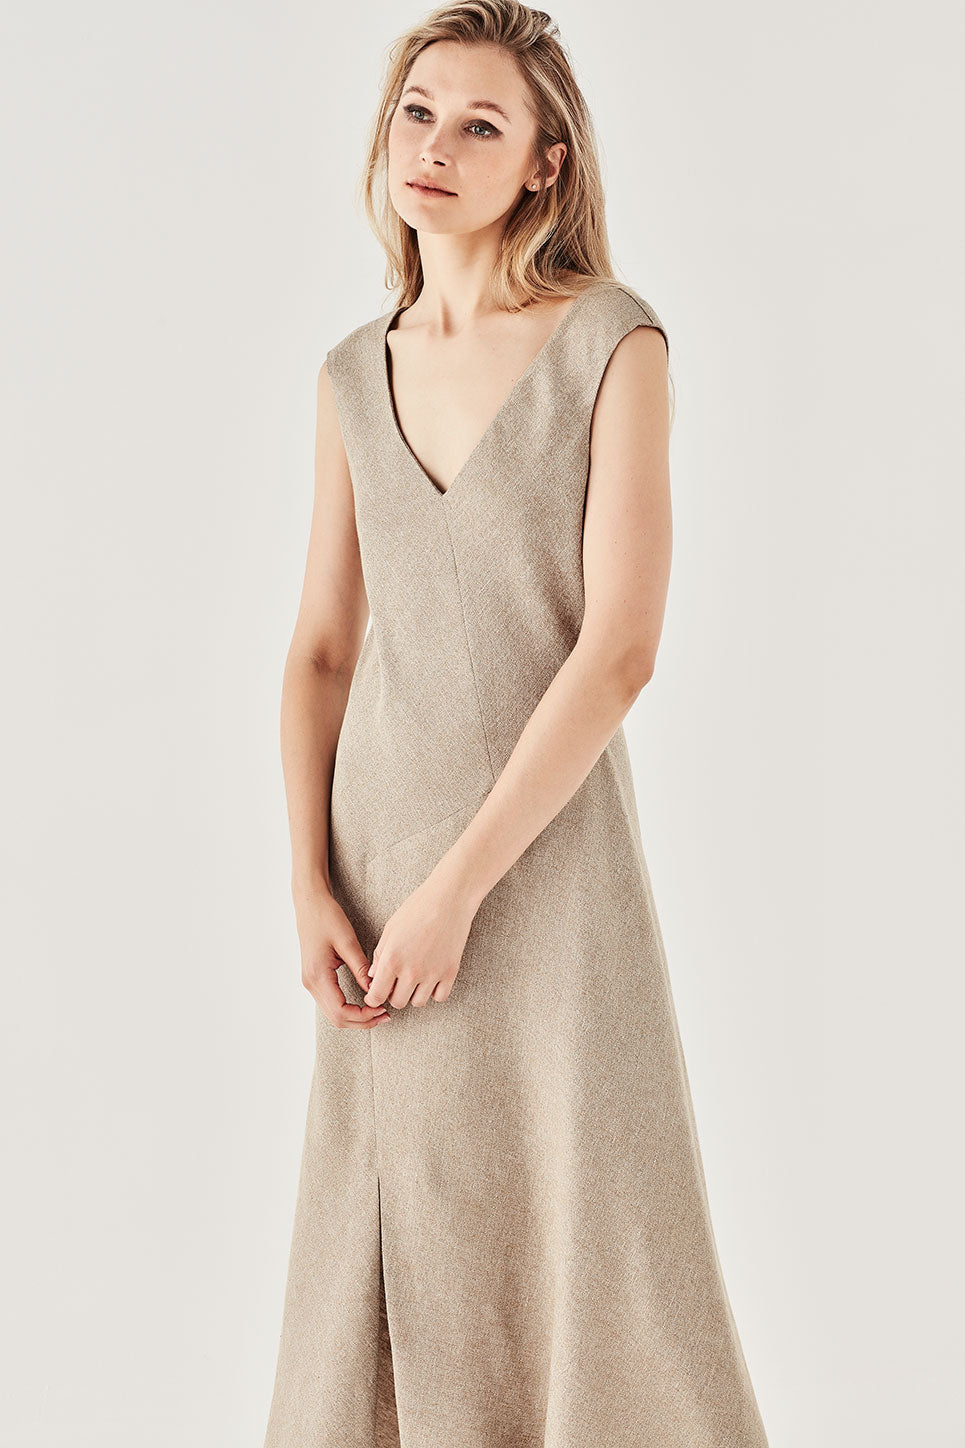 The Mawson Dress in Biscuit